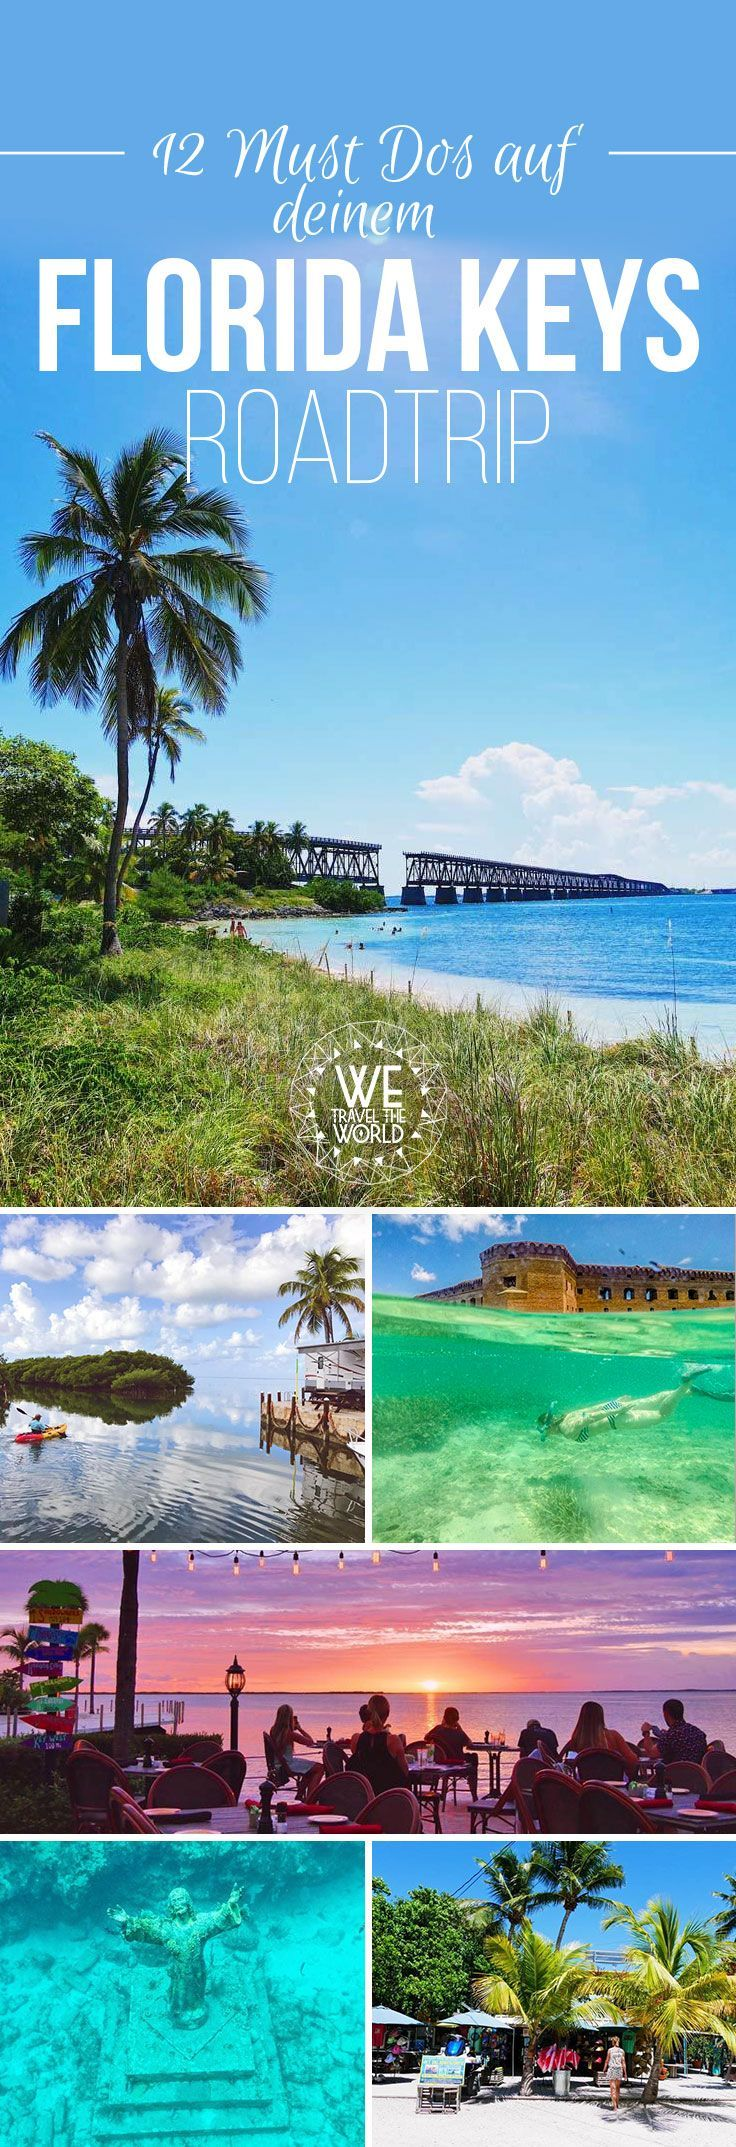 Florida Keys Guide: 12 Dinge, die deine Florida Keys Rundreise unvergesslich machen – WE TRAVEL THE WORLD | Reise Blog | Reiseinspiration